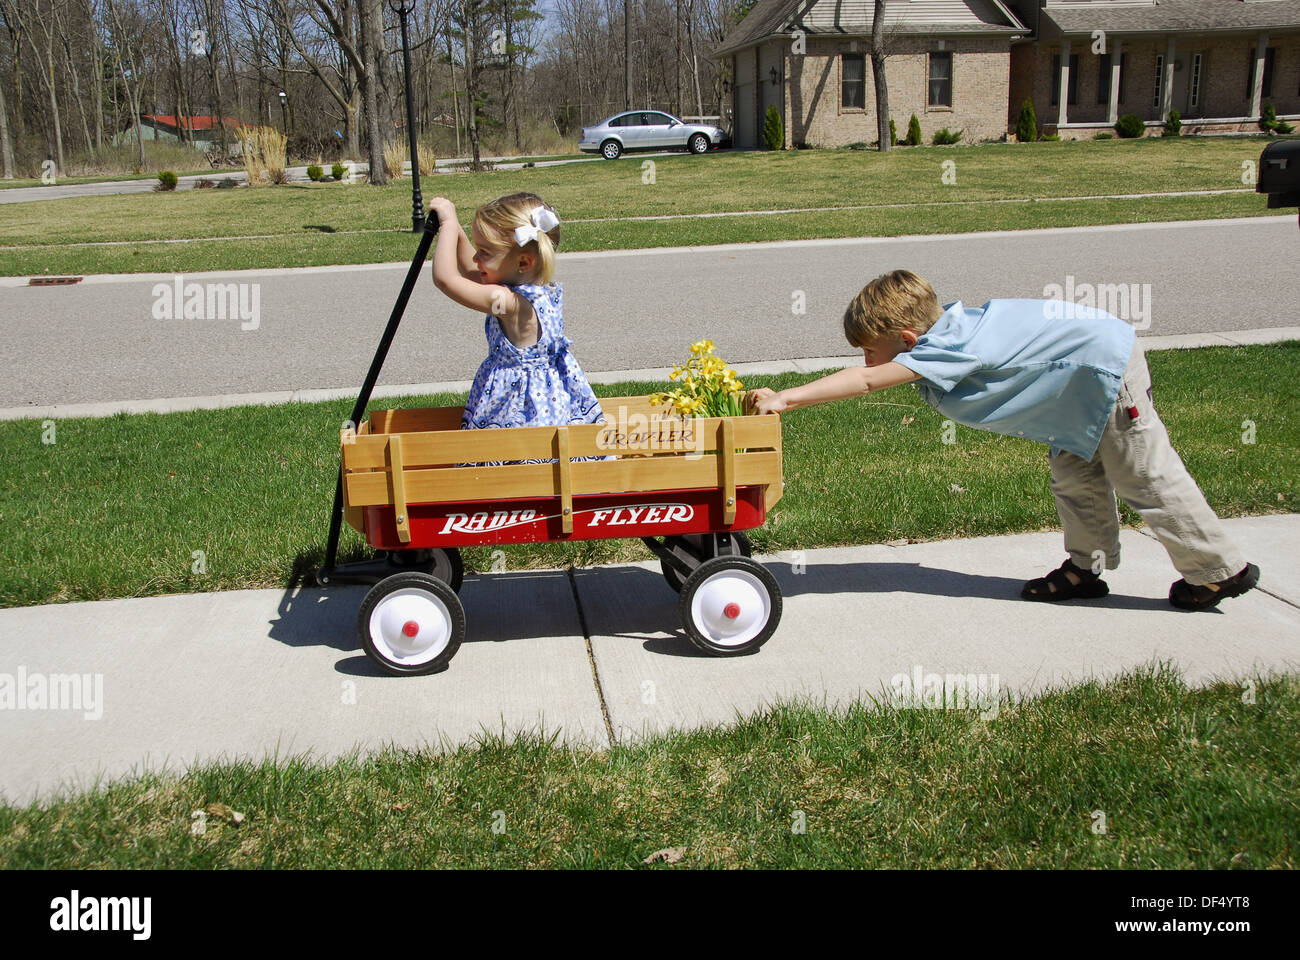 Children In A Wagon Showing The Concept Of Pulling And